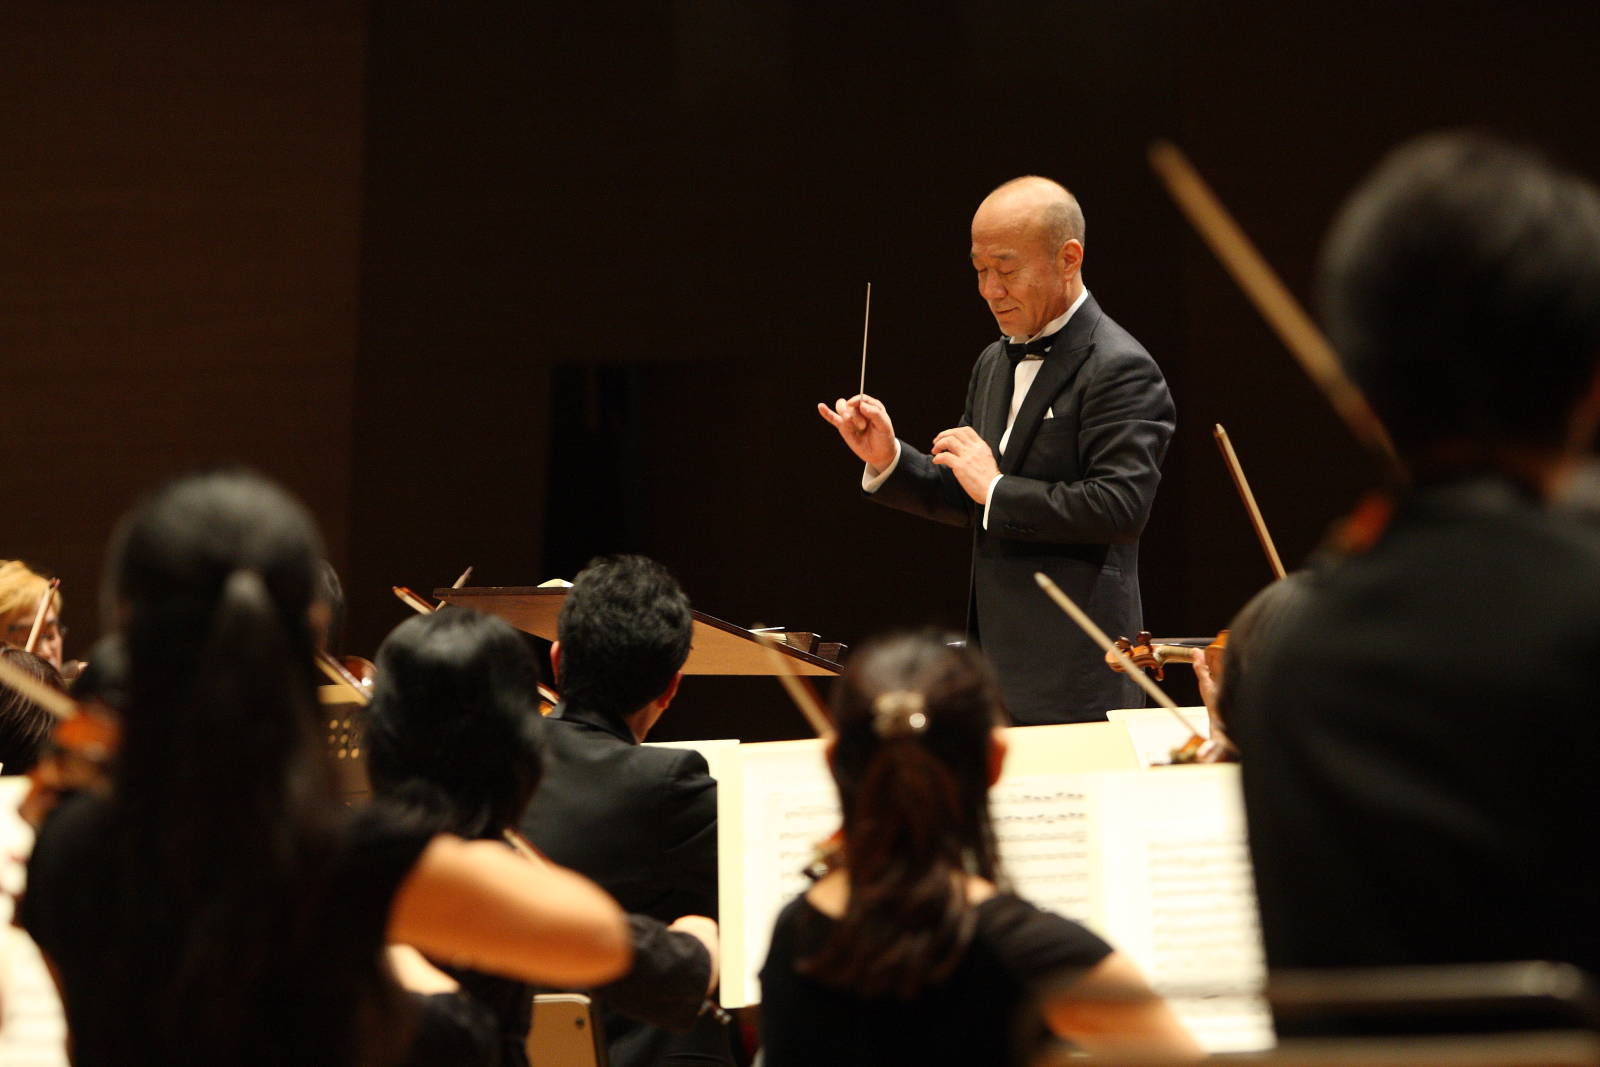 Joe Hisaishi - Conductors, Composer